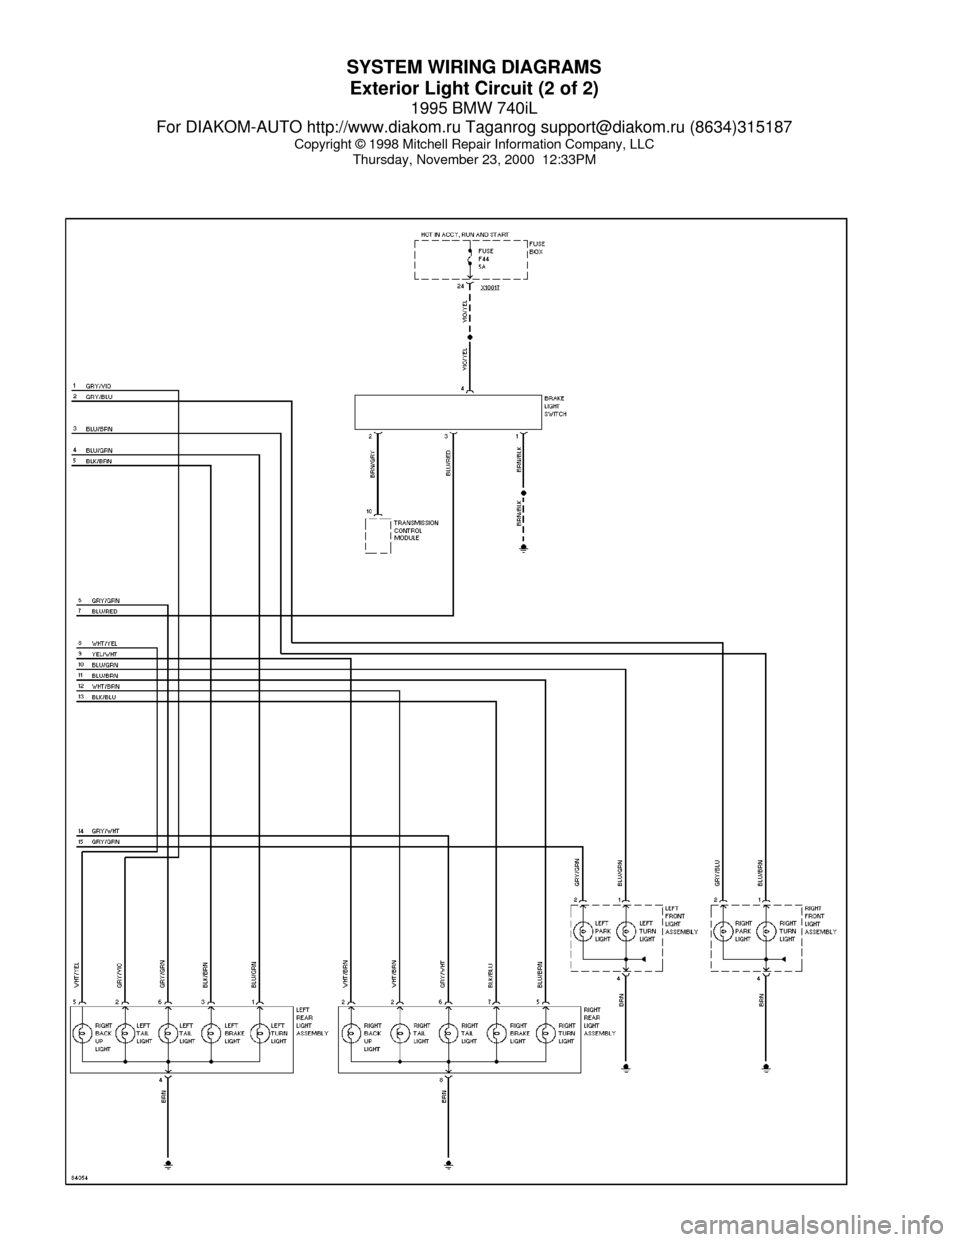 BMW 740il 1995 E38 System Wiring Diagrams (60 Pages) | 1998 Bmw 740il Wiring Schematic |  | Car Manuals Online